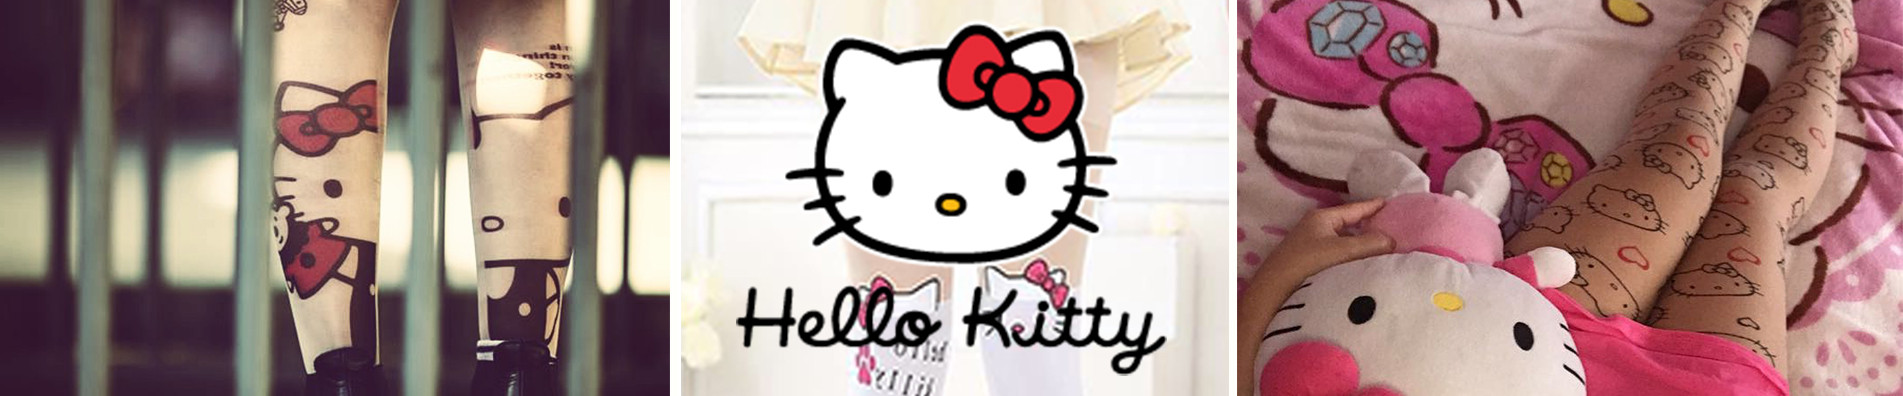 Collants Hello Kitty / Sanrio | Mes Deux Chaussettes